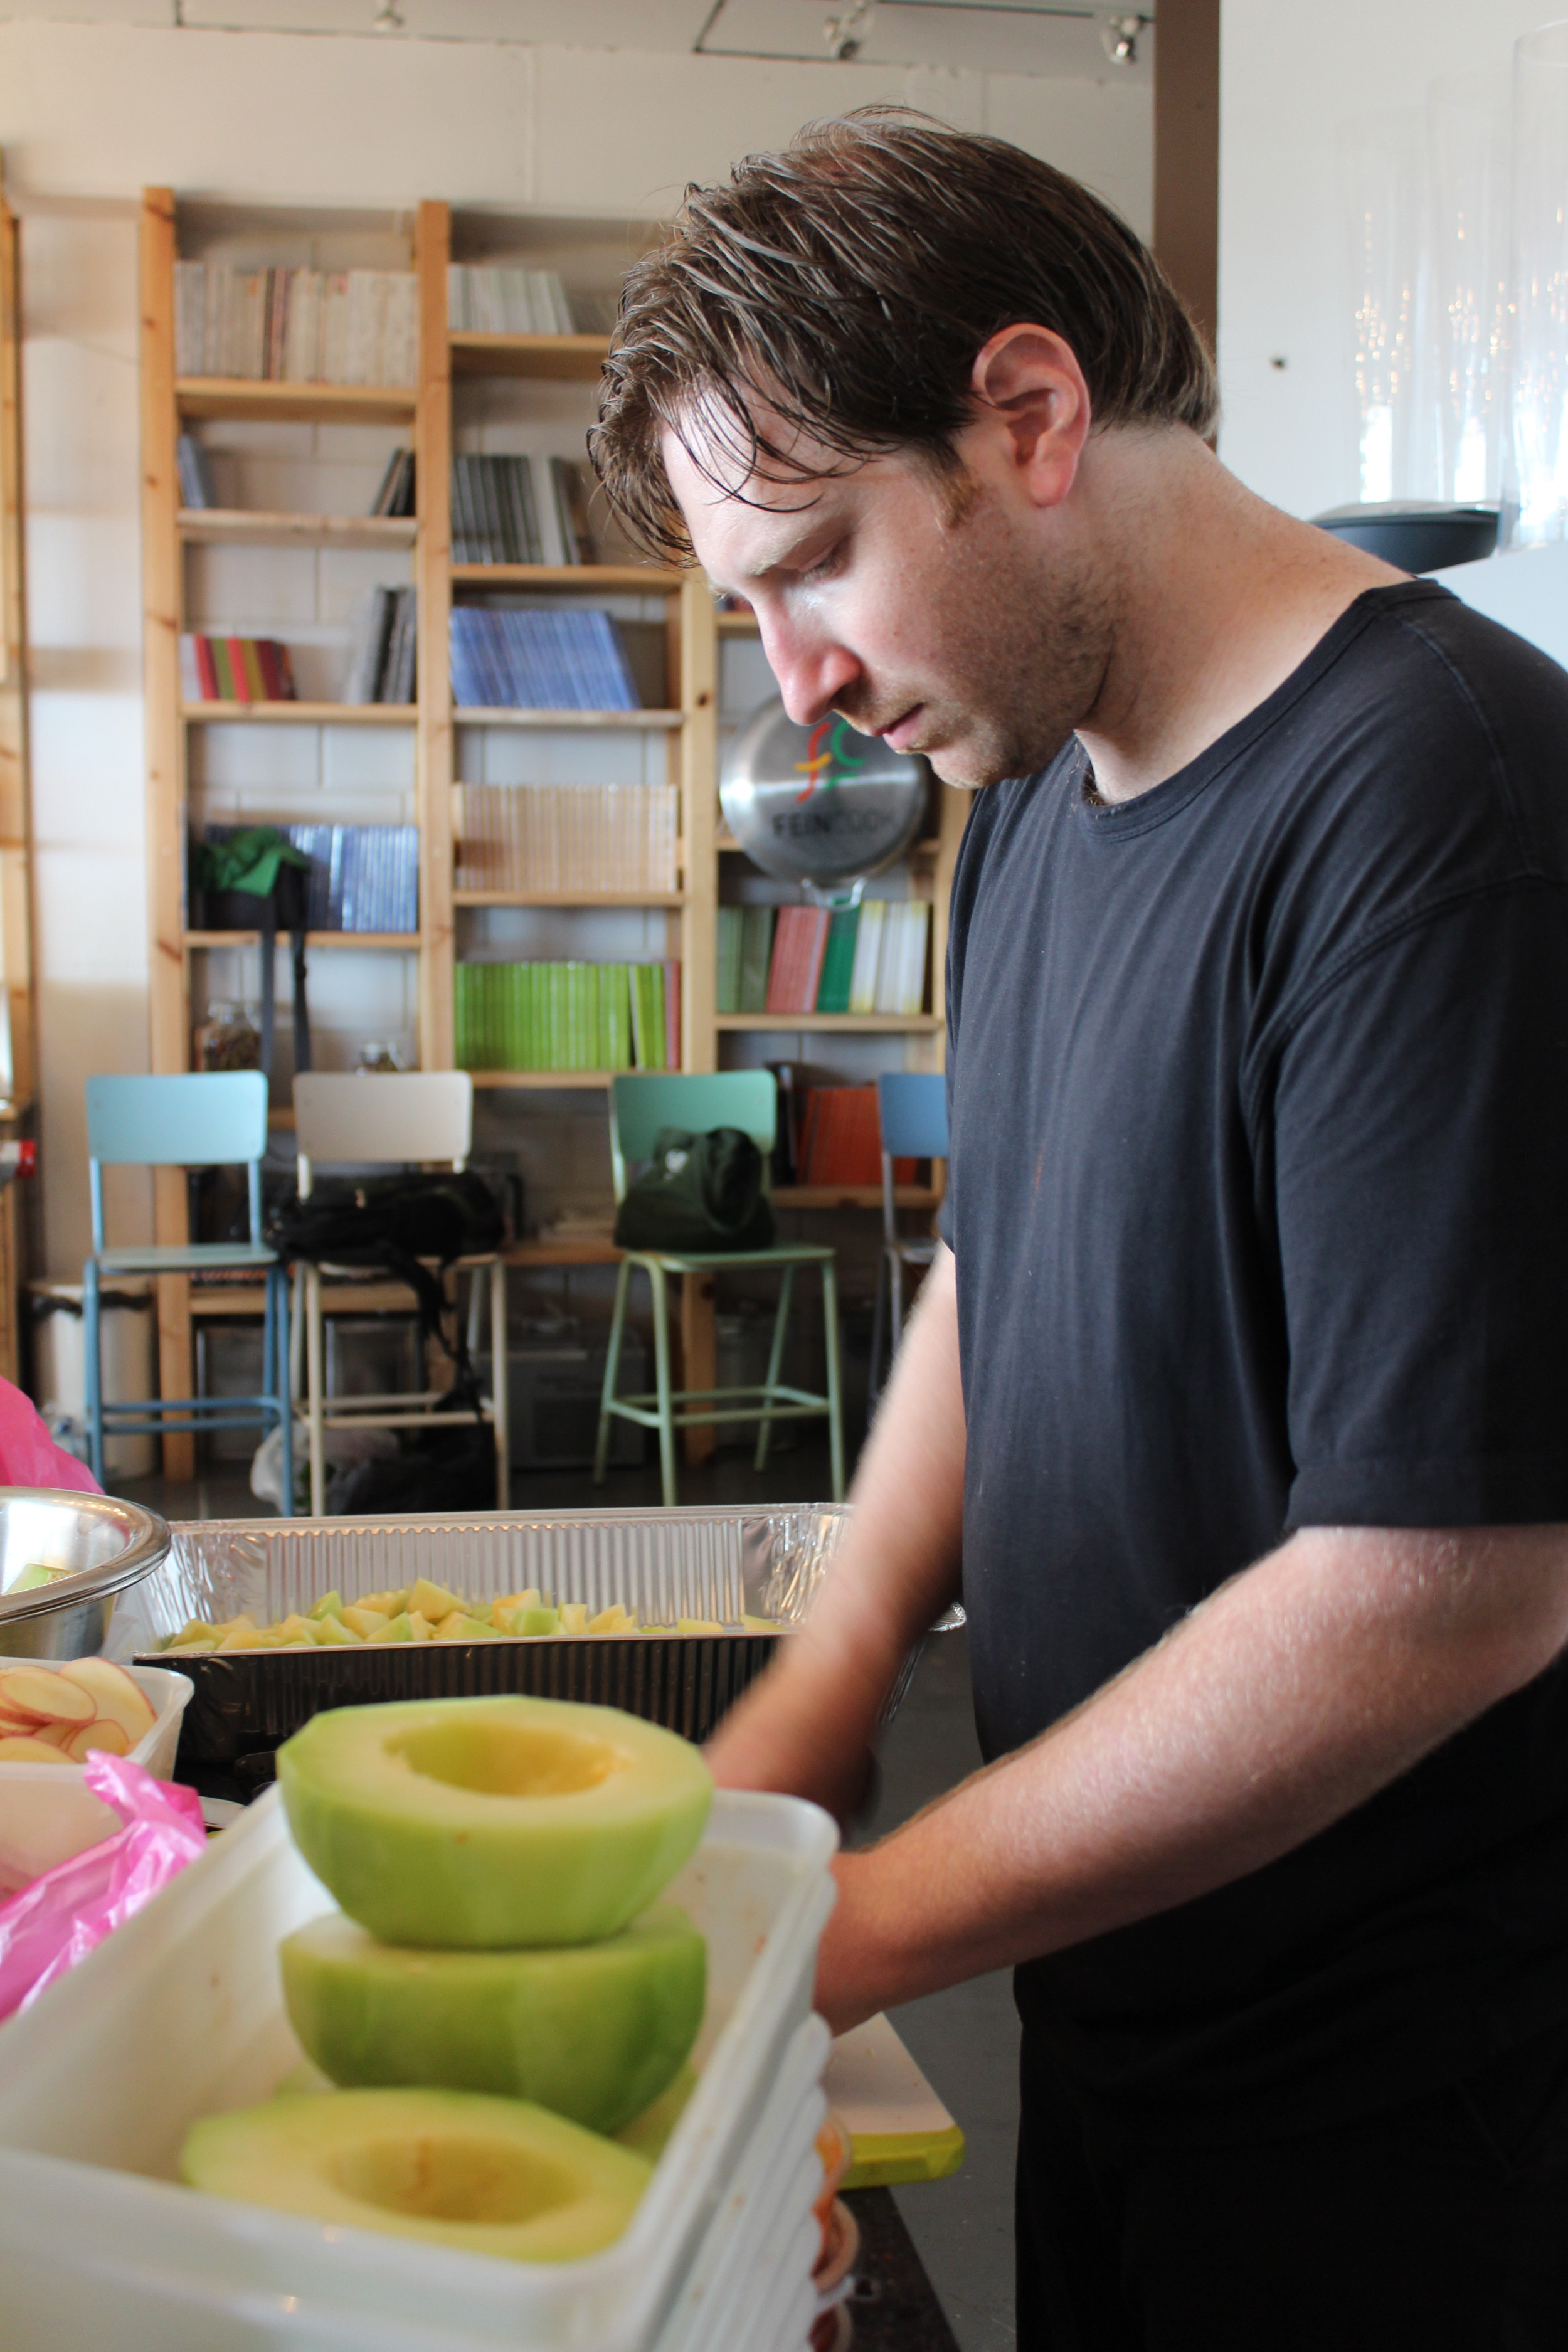 Jason Marcus shaving melons in preparation for a melon salad dish he is creating on his visit in Tel Aviv